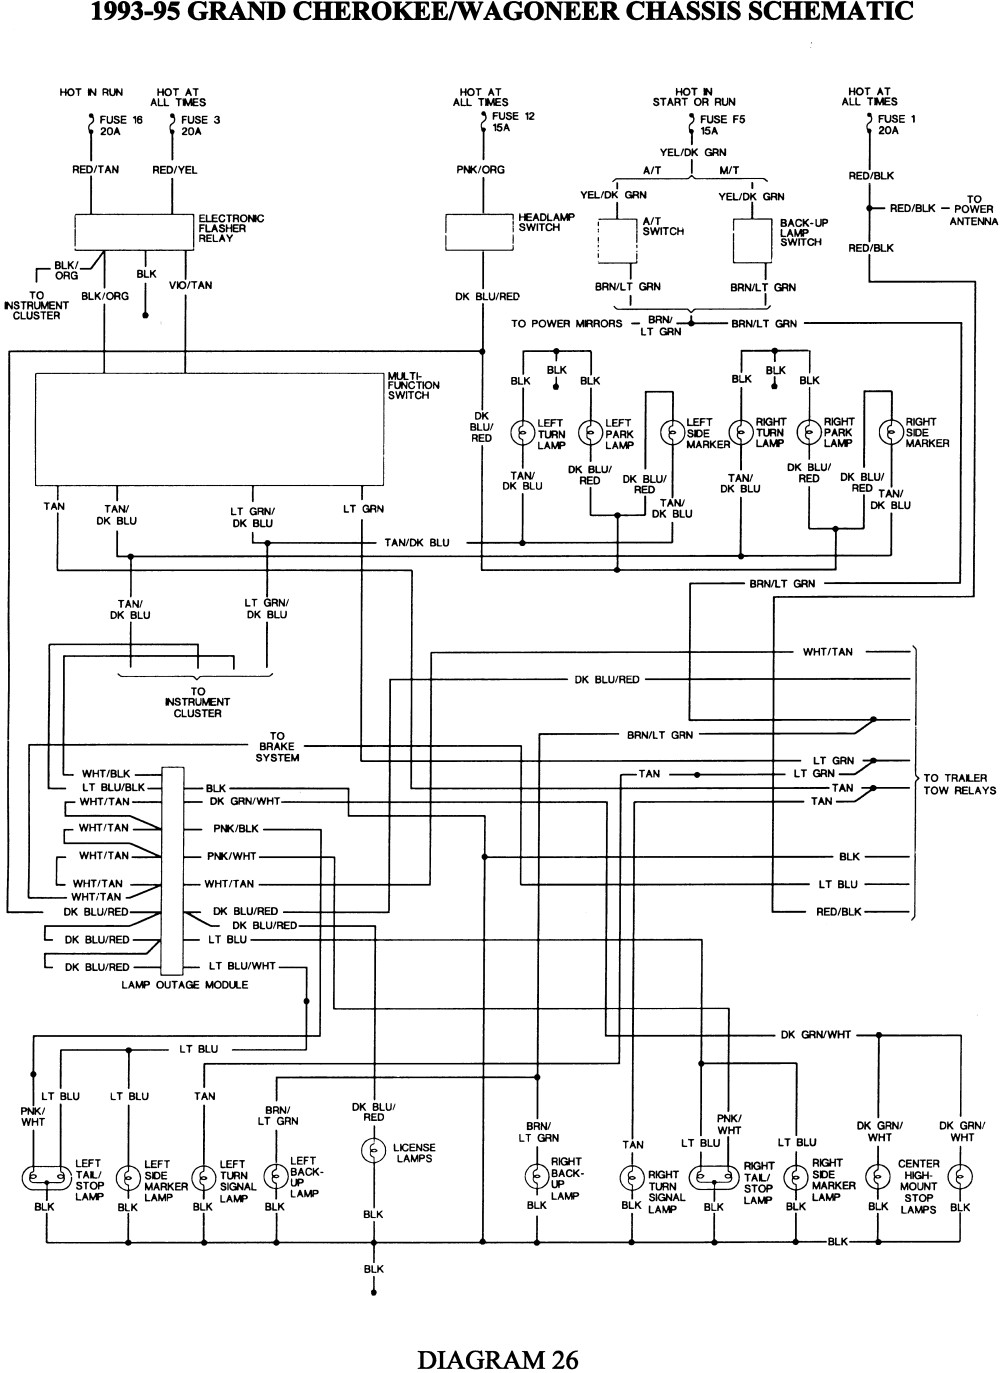 Jeep Cherokee Xj Wiring Diagrams Wiring Diagram Effective A Effective A Bowlingronta It